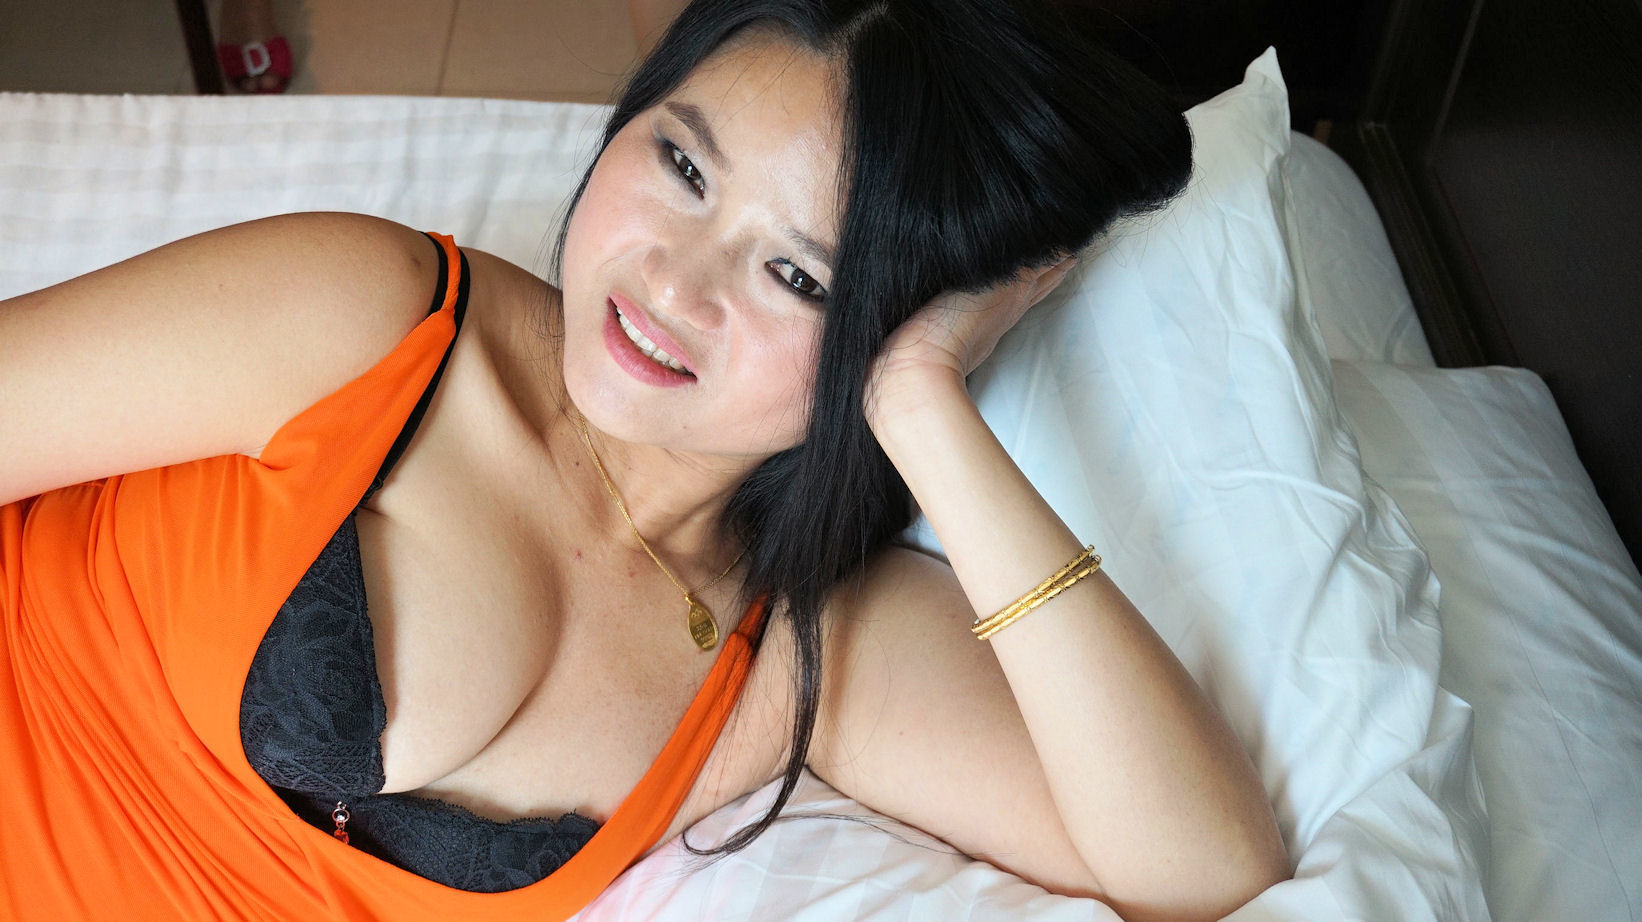 escort skaraborg thai rose massage